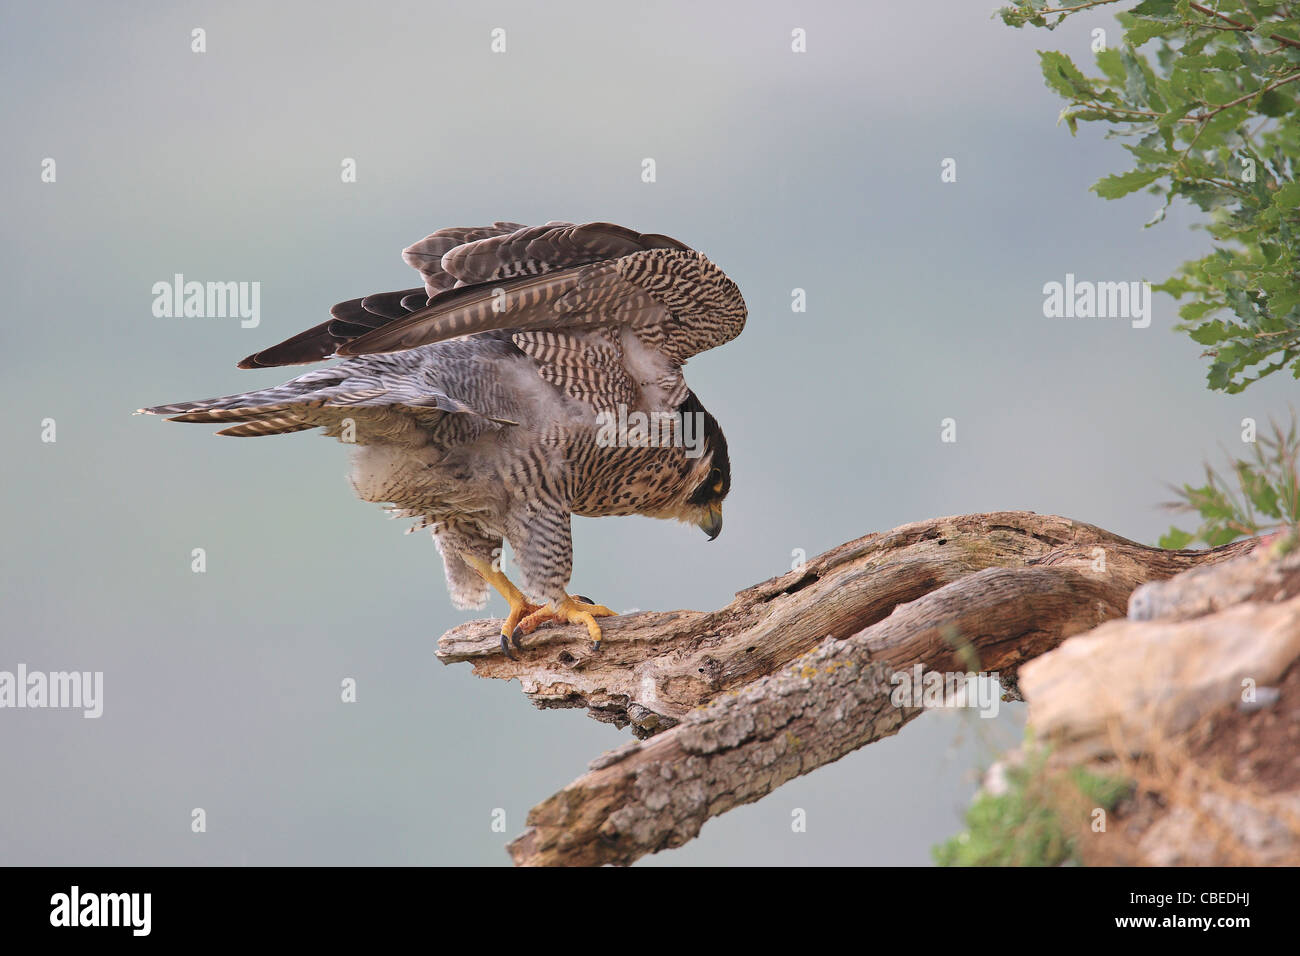 Peregrine Falcon (Falco peregrinus) standing on a broken off branch while shaking its feathers. - Stock Image